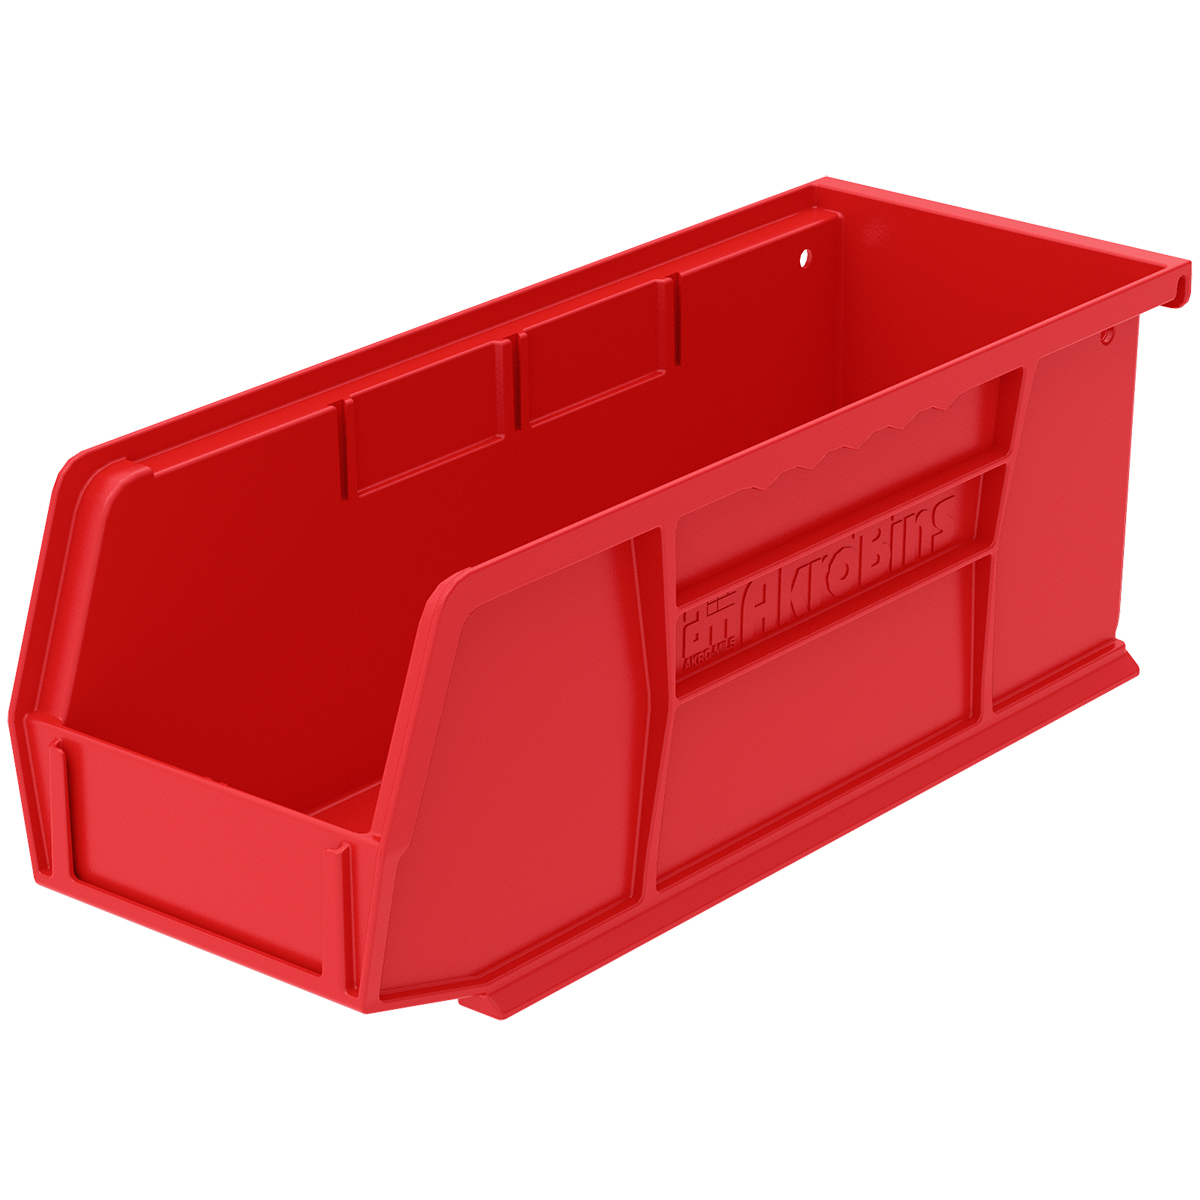 AkroBin 7-3/8 x 4-1/8 x 3, Red (30220RED).  This item sold in carton quantities of 24.